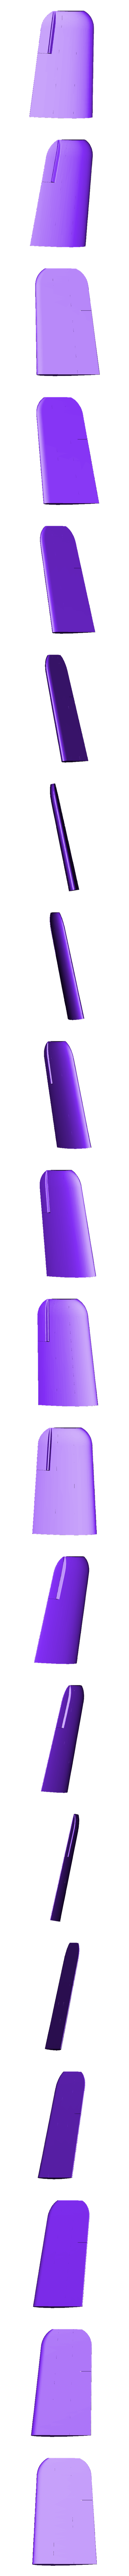 Left Wing Outer.stl Download free STL file Flyer Mk. 1a Modifications • Object to 3D print, billbo1958